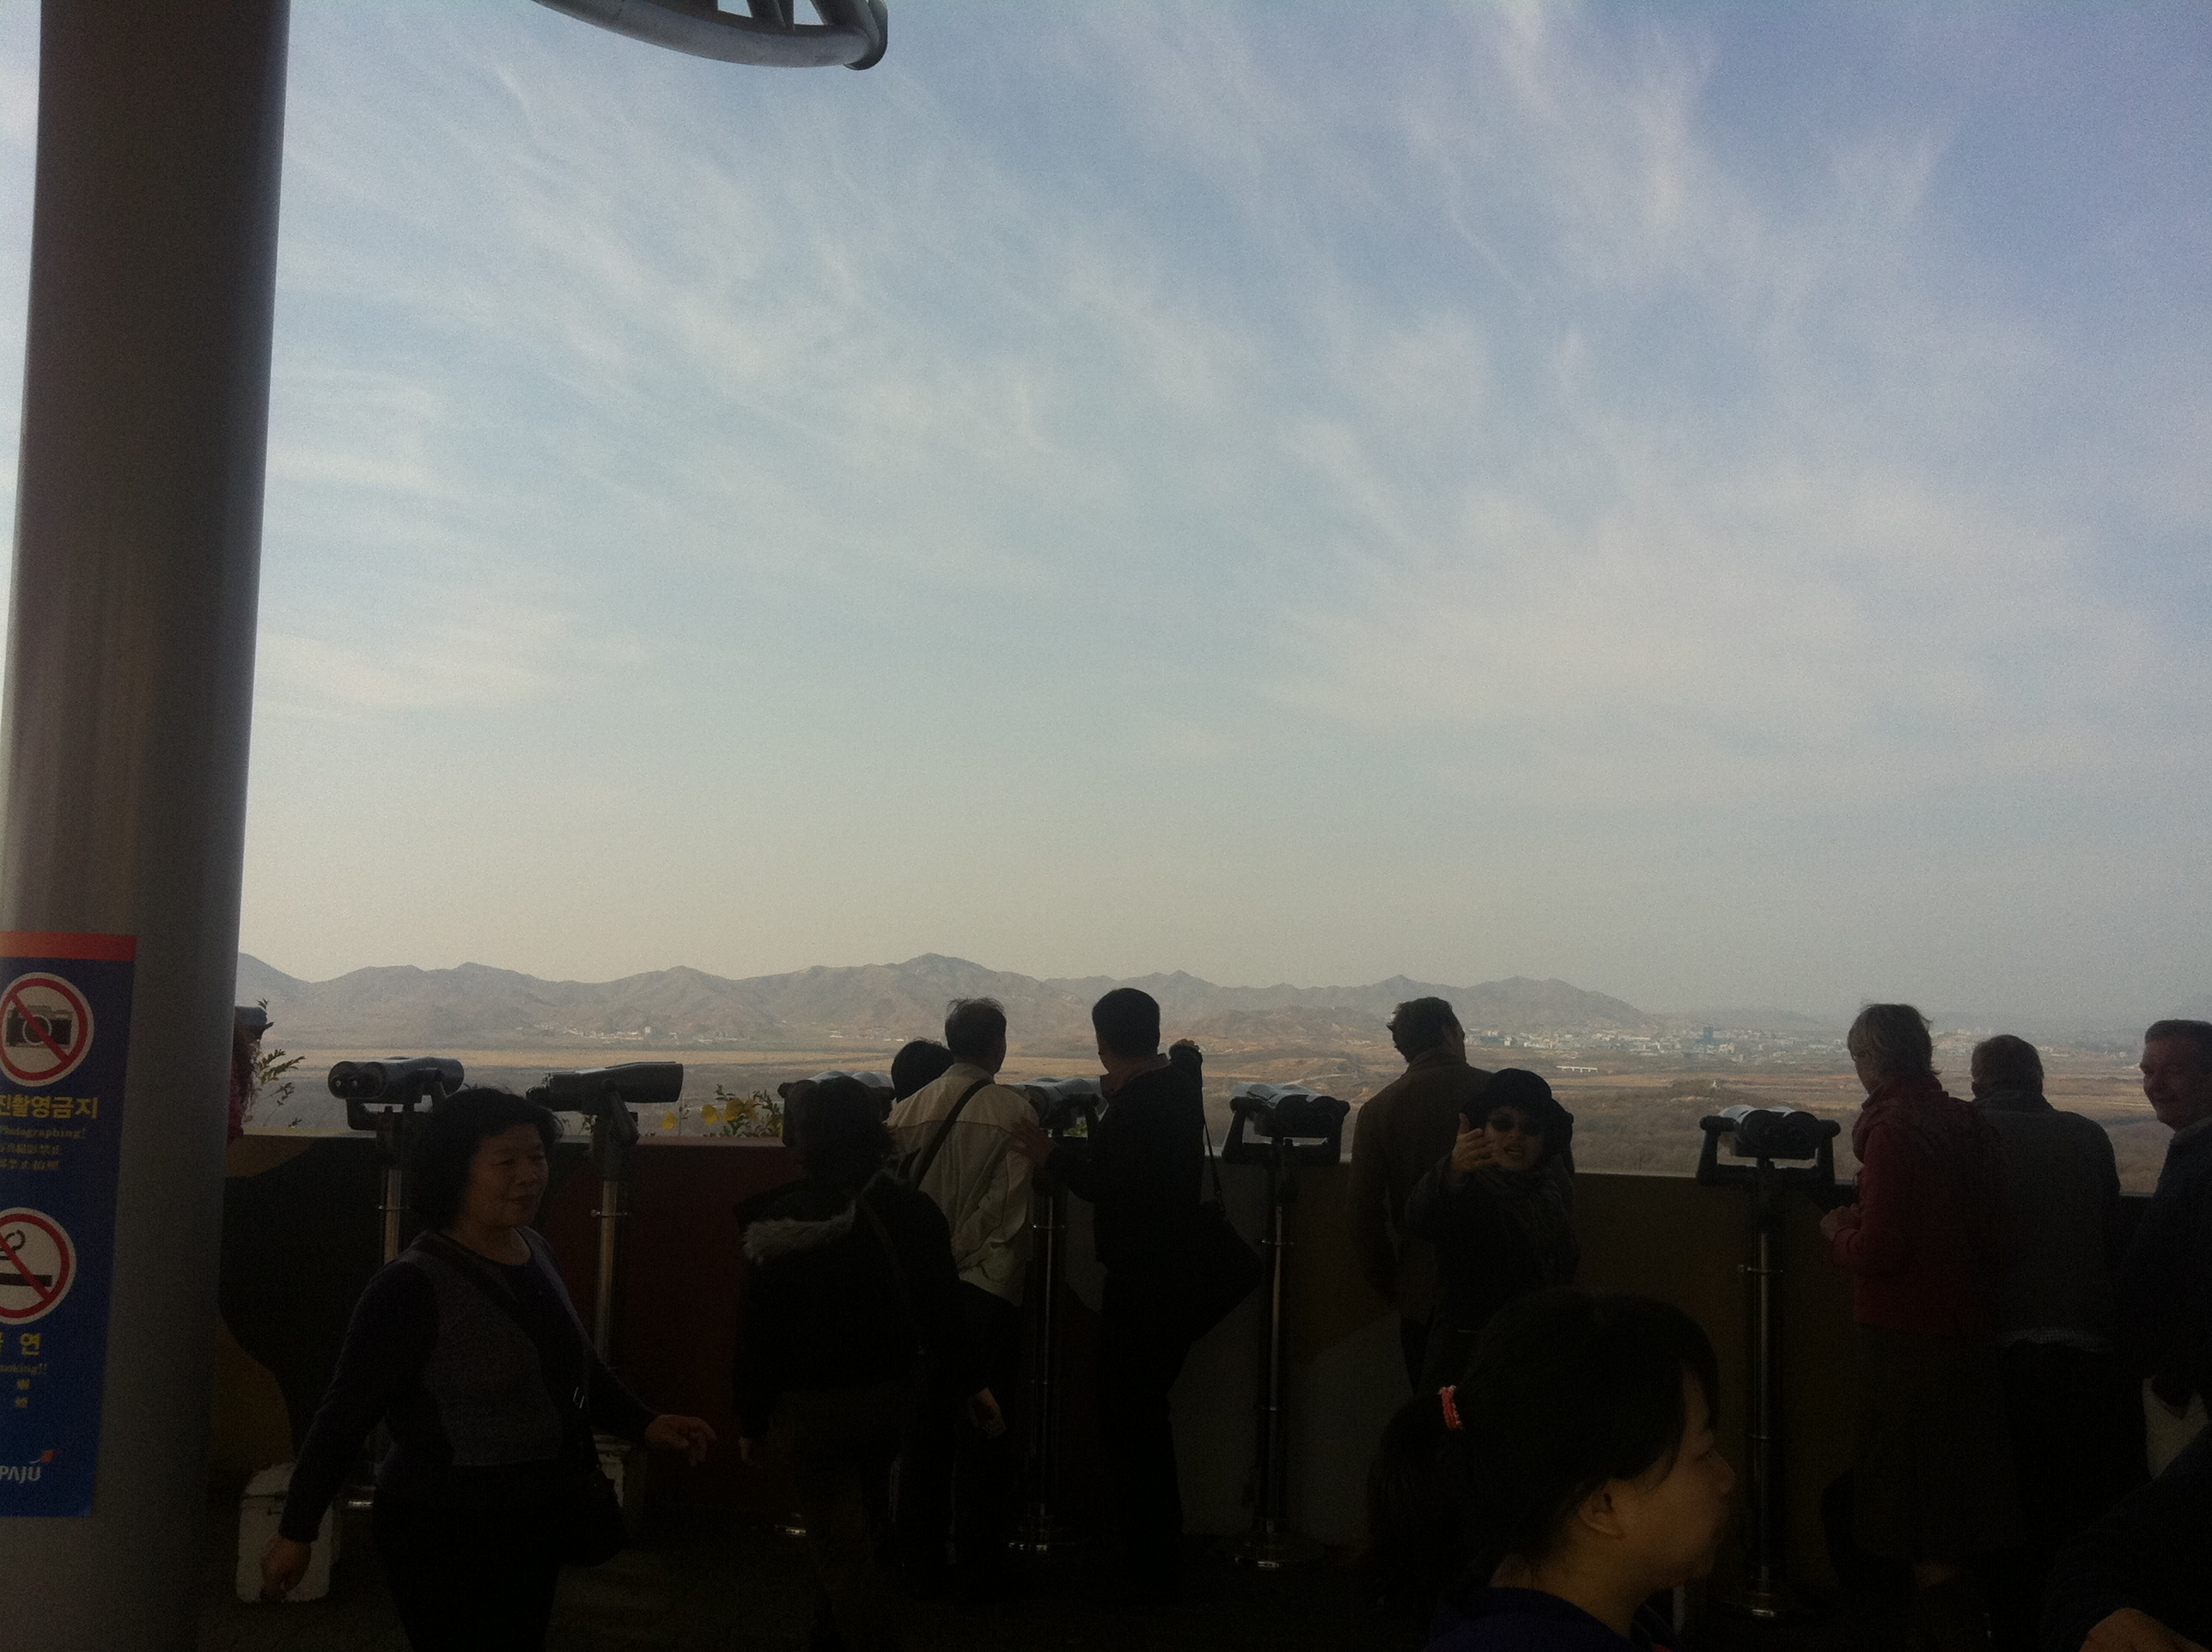 Staying Behind the Legal Picture Line at the DMZ